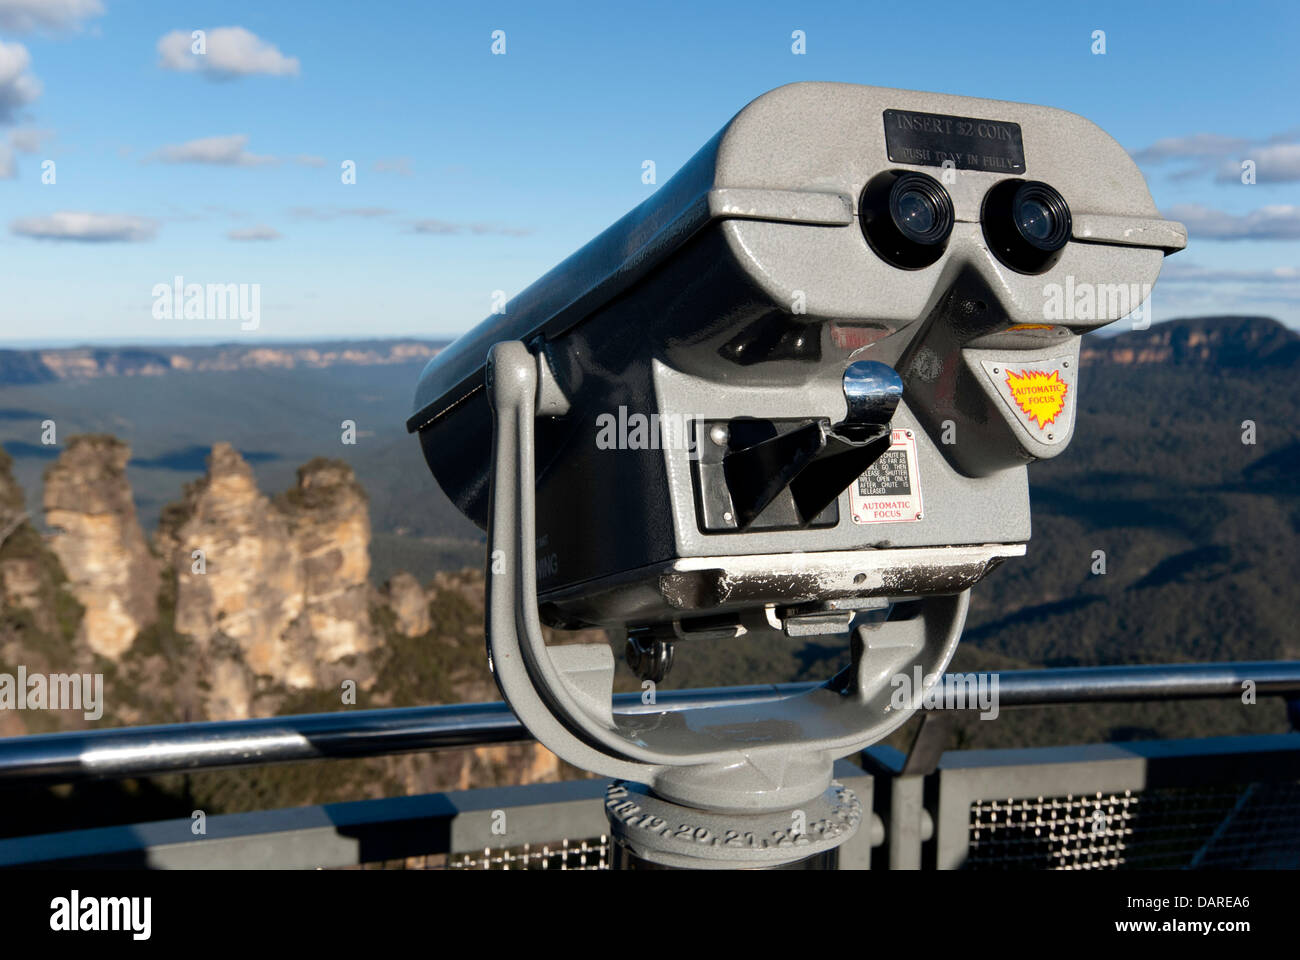 Coin operated binocular viewer looking out at The Three Sisters rock formation, Echo Point, Katoomba, Australia - Stock Image